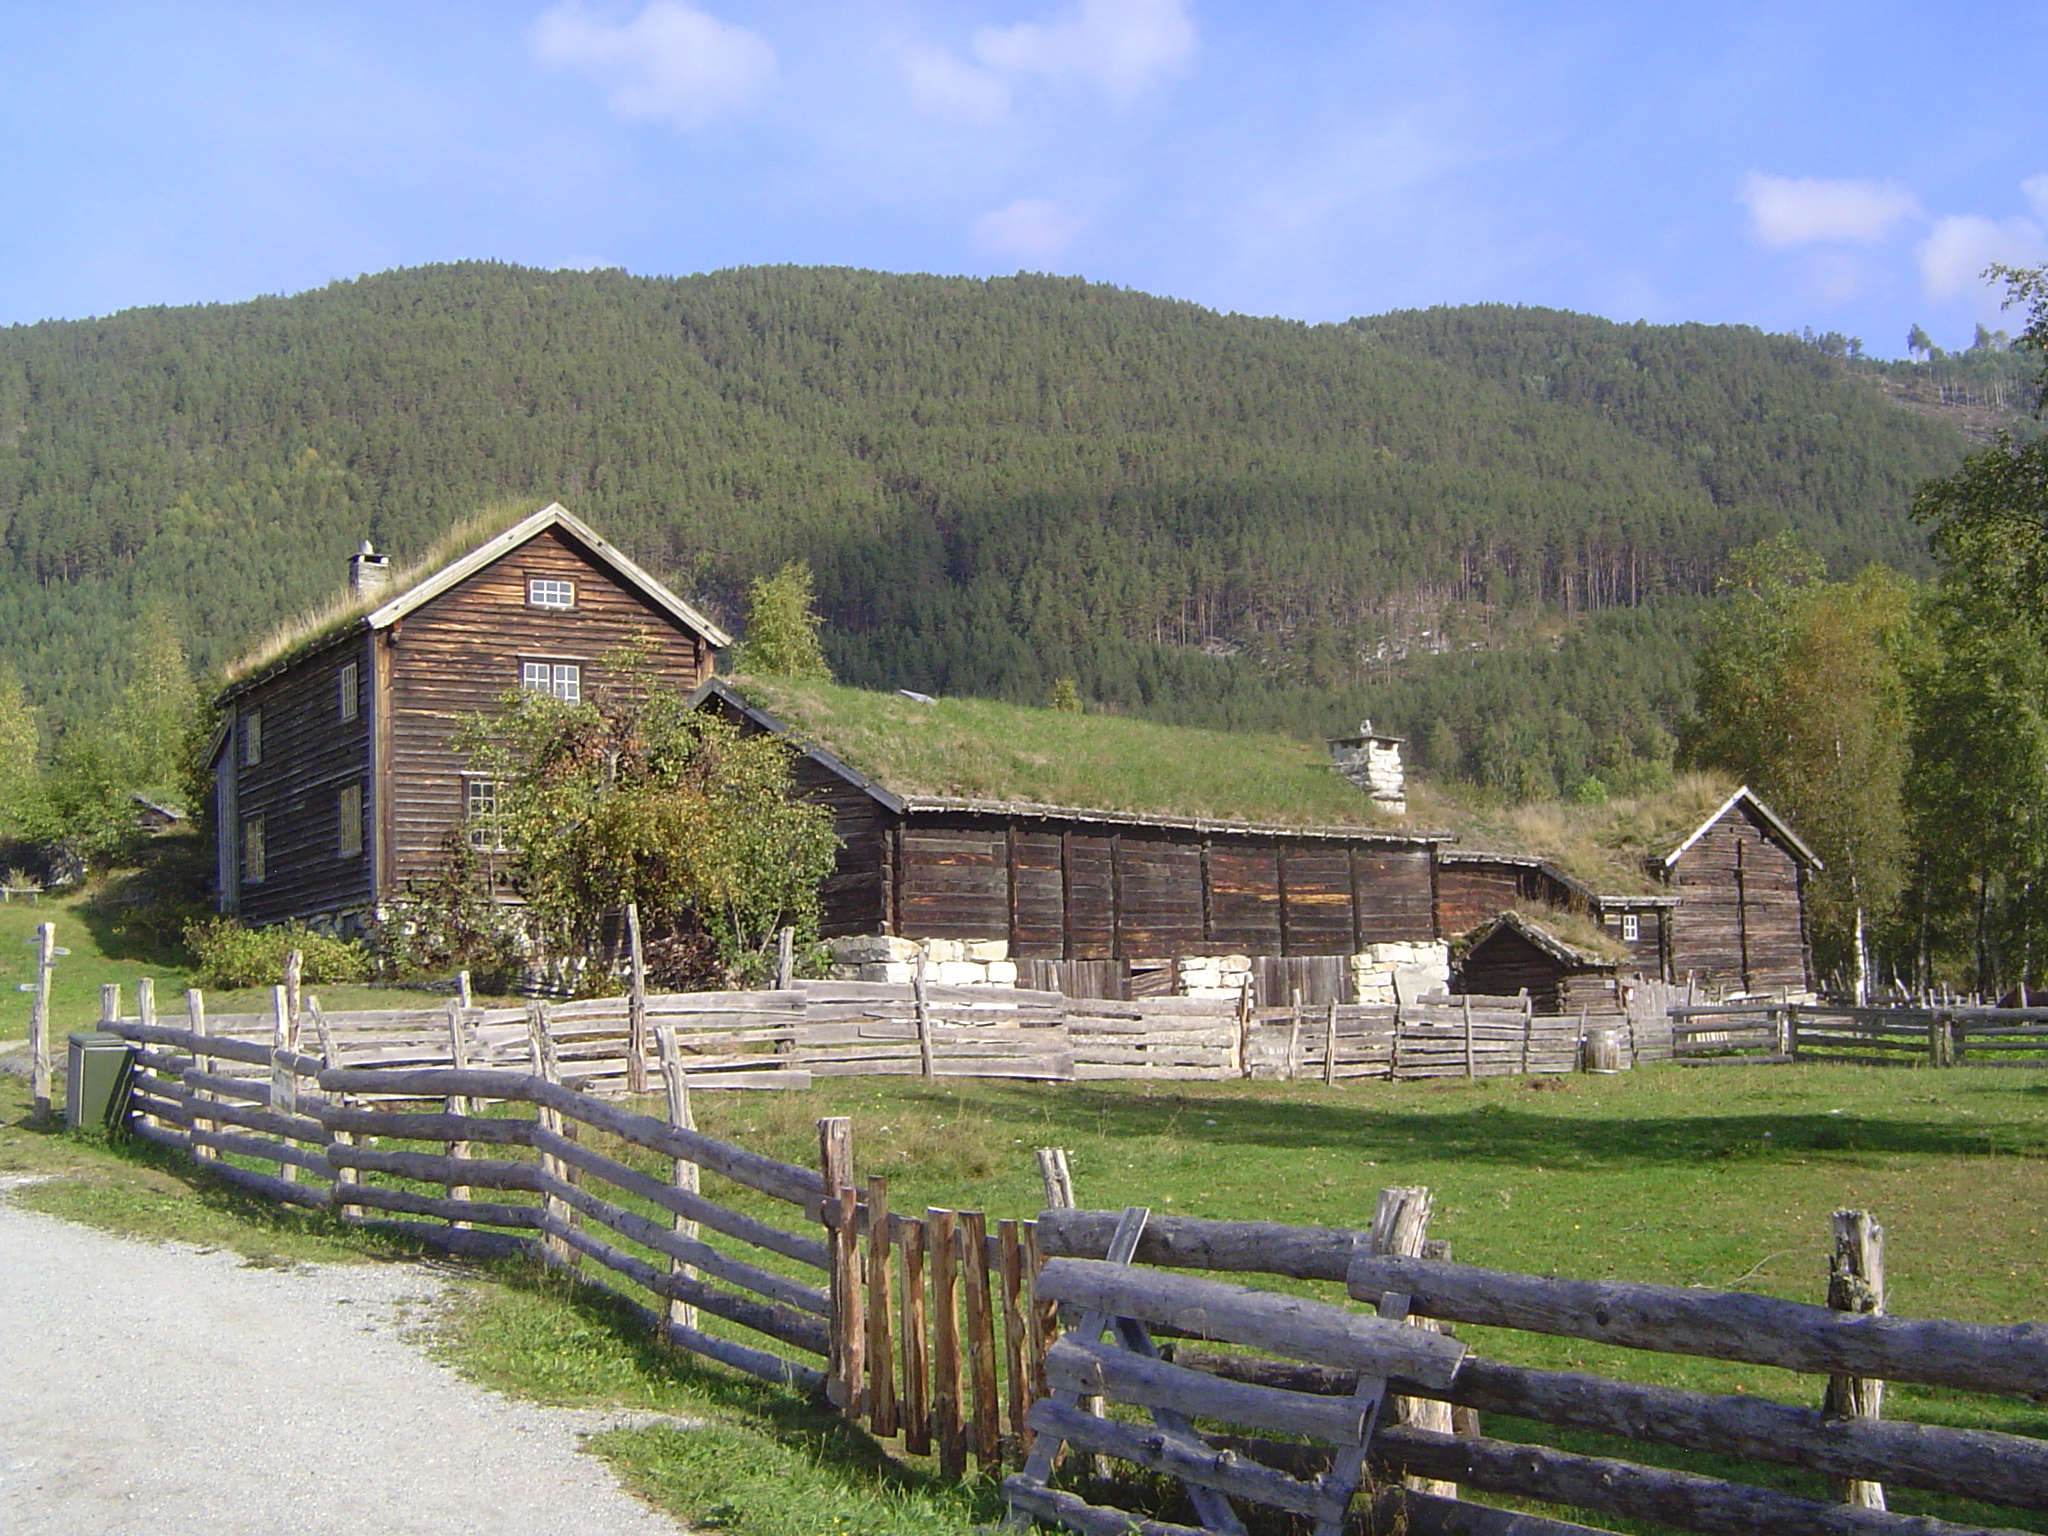 Norway: Indre Sogn